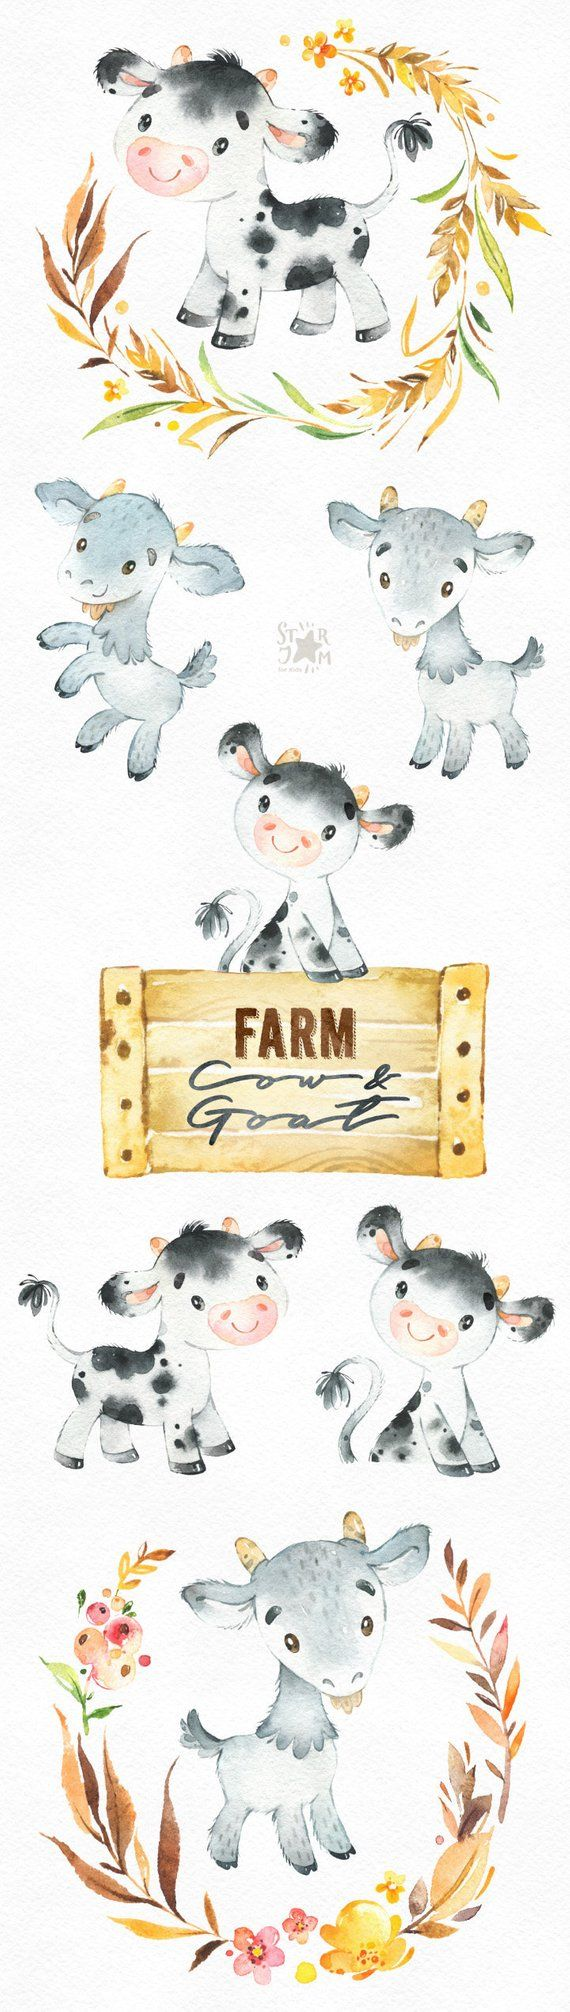 Farm cow goat watercolor. Country clipart country animal